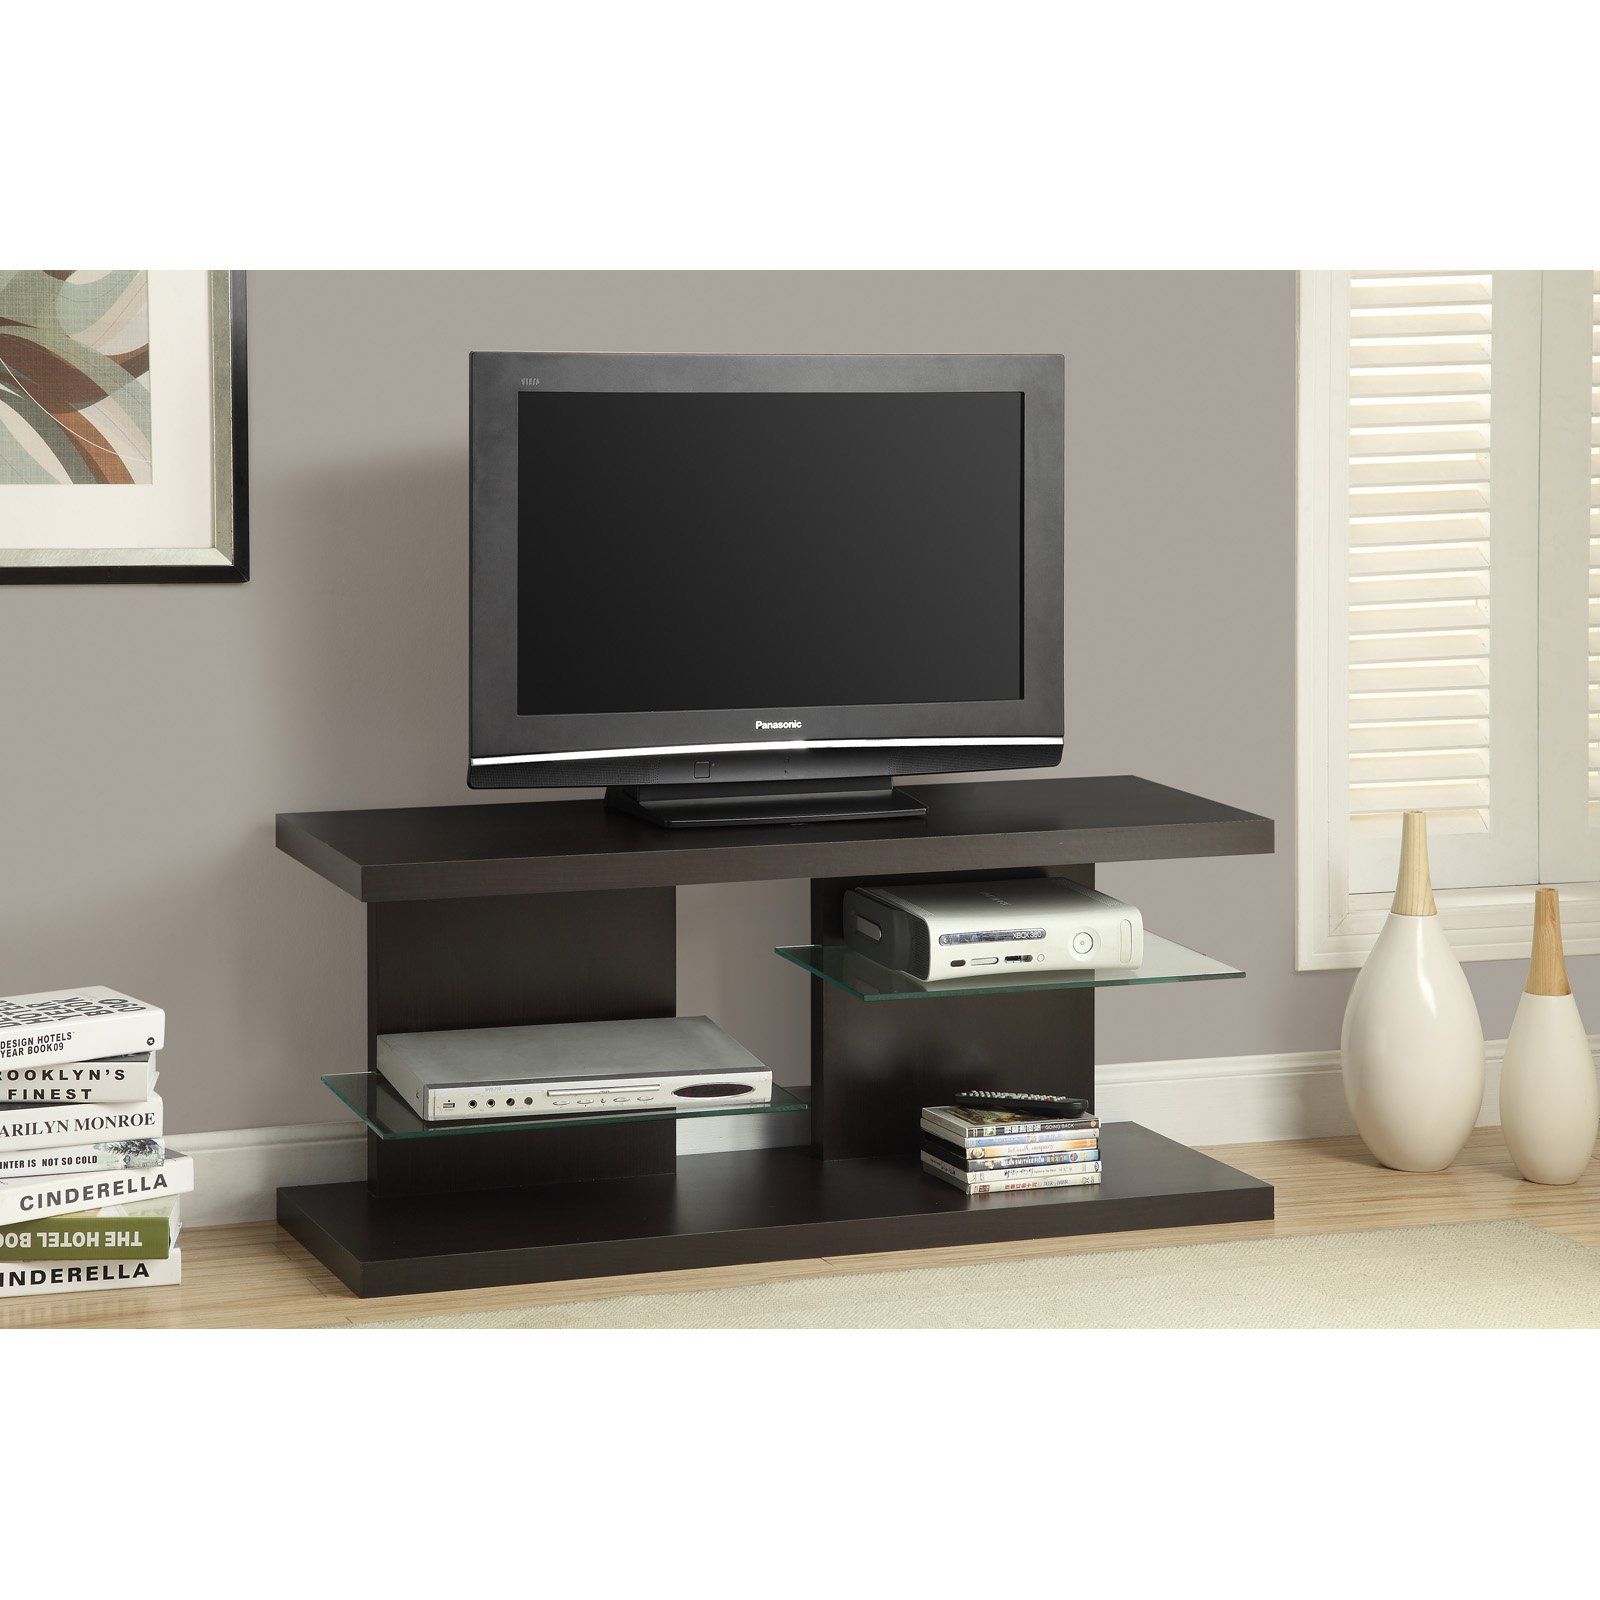 monarch specialties stand with floating glass shelves for electronics ikea lack bookcase hack side shelf brackets bath and beyond hooks corner perth shelving unit wall cable box